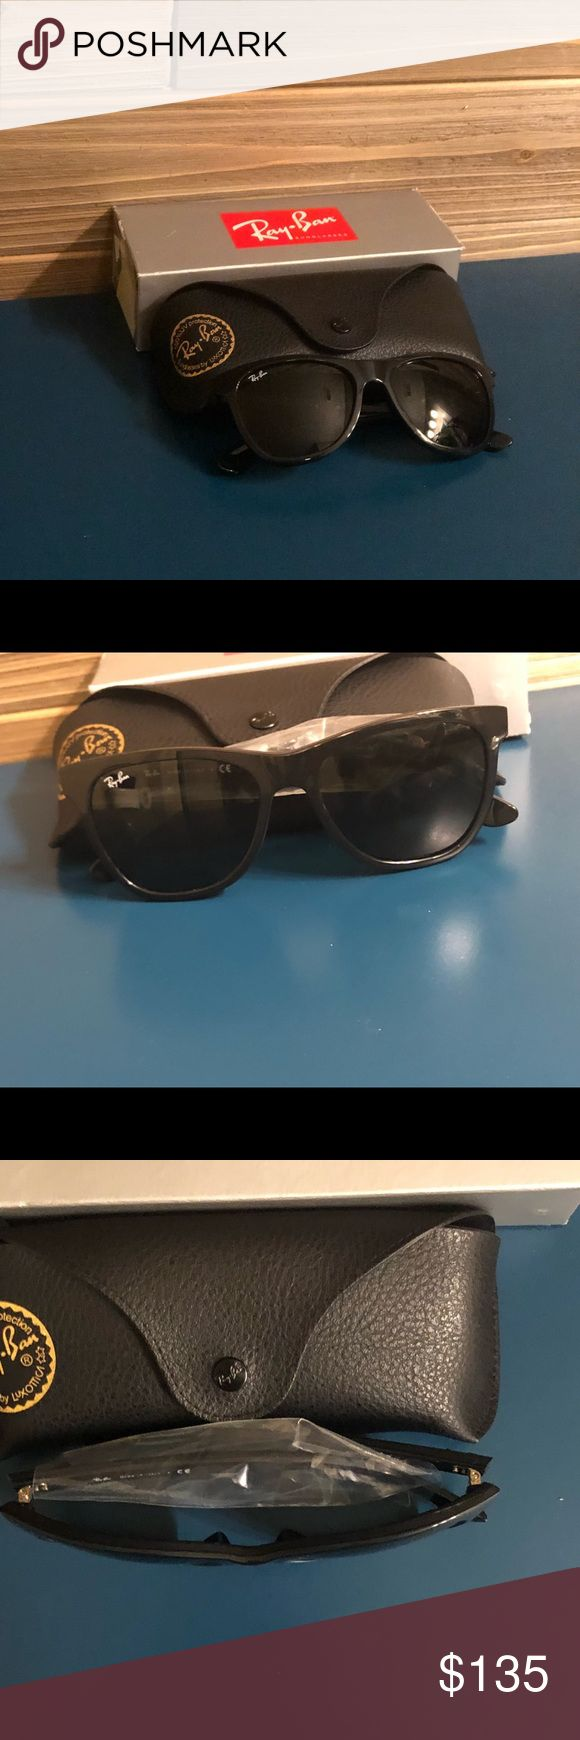 NEW IN BOX-Ray Ban Wayfarers 🕶 Still in packaging. Only opened to take picture.  The opening to the box was ripped (pictured) but still in tact and will be included with purchase.  These are black-Stylish Wayfarer Ray Ban. Truly a must have accessory.  Interested? Make me an offer or place in bundle. 🕶🕶 PER THE MANUFACTURER ➡️ Lenses absorb up to 80% of visible light and 100% of all UV and some blue light, providing true color perception. Measurements: Eye Size: 52 2⁄5 mm Bridge: 22 1⁄2…